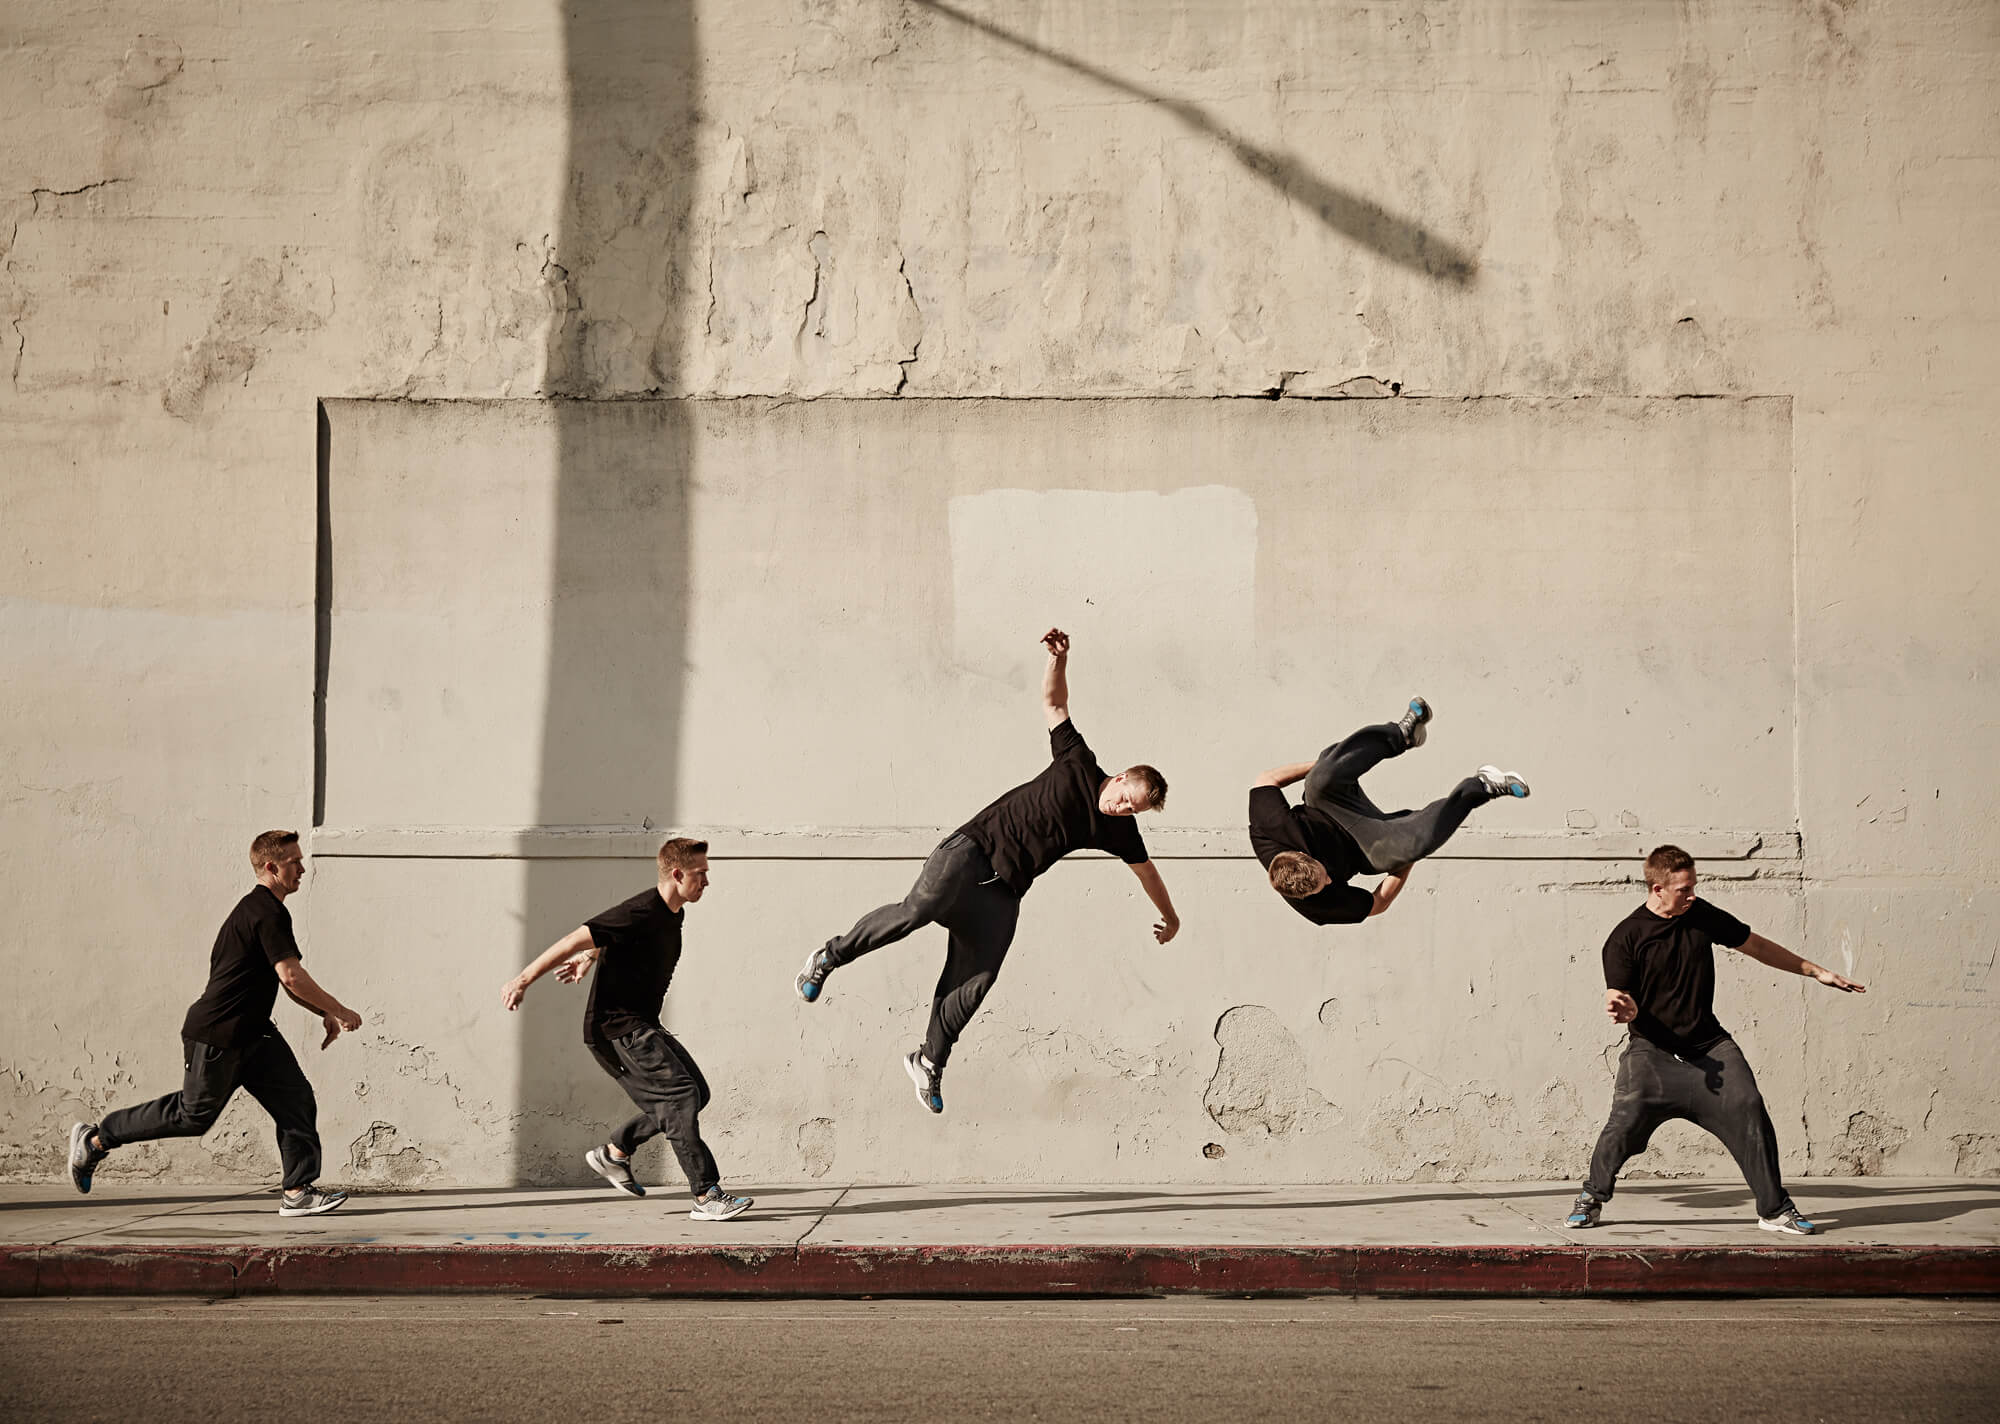 Unified Content, Unified Content Toronto, Aaron Cobb, Robbie Corbett, Parkour, Athlete, Action Shot, LA, Los Angeles, Athlete, Portrait, Sports Photography, Action Shot, Action Photography,